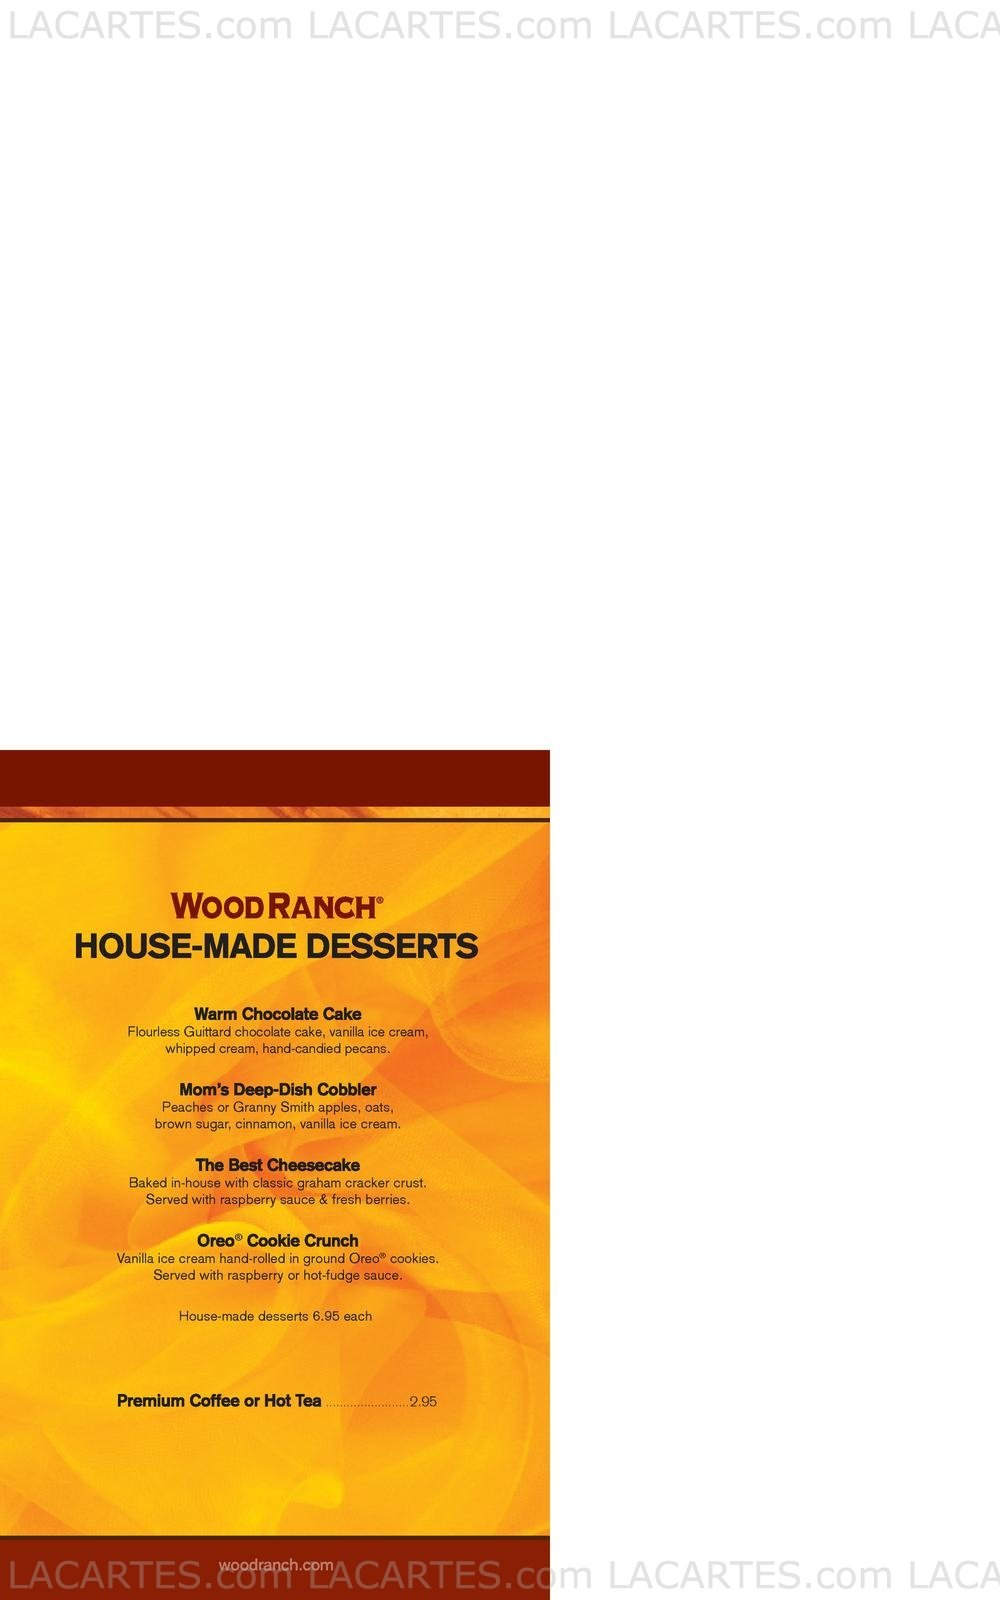 View Full Size Image ... - 6 Of 7 Price Lists & Menus €� Wood Ranch - Arcadia Arcadia American